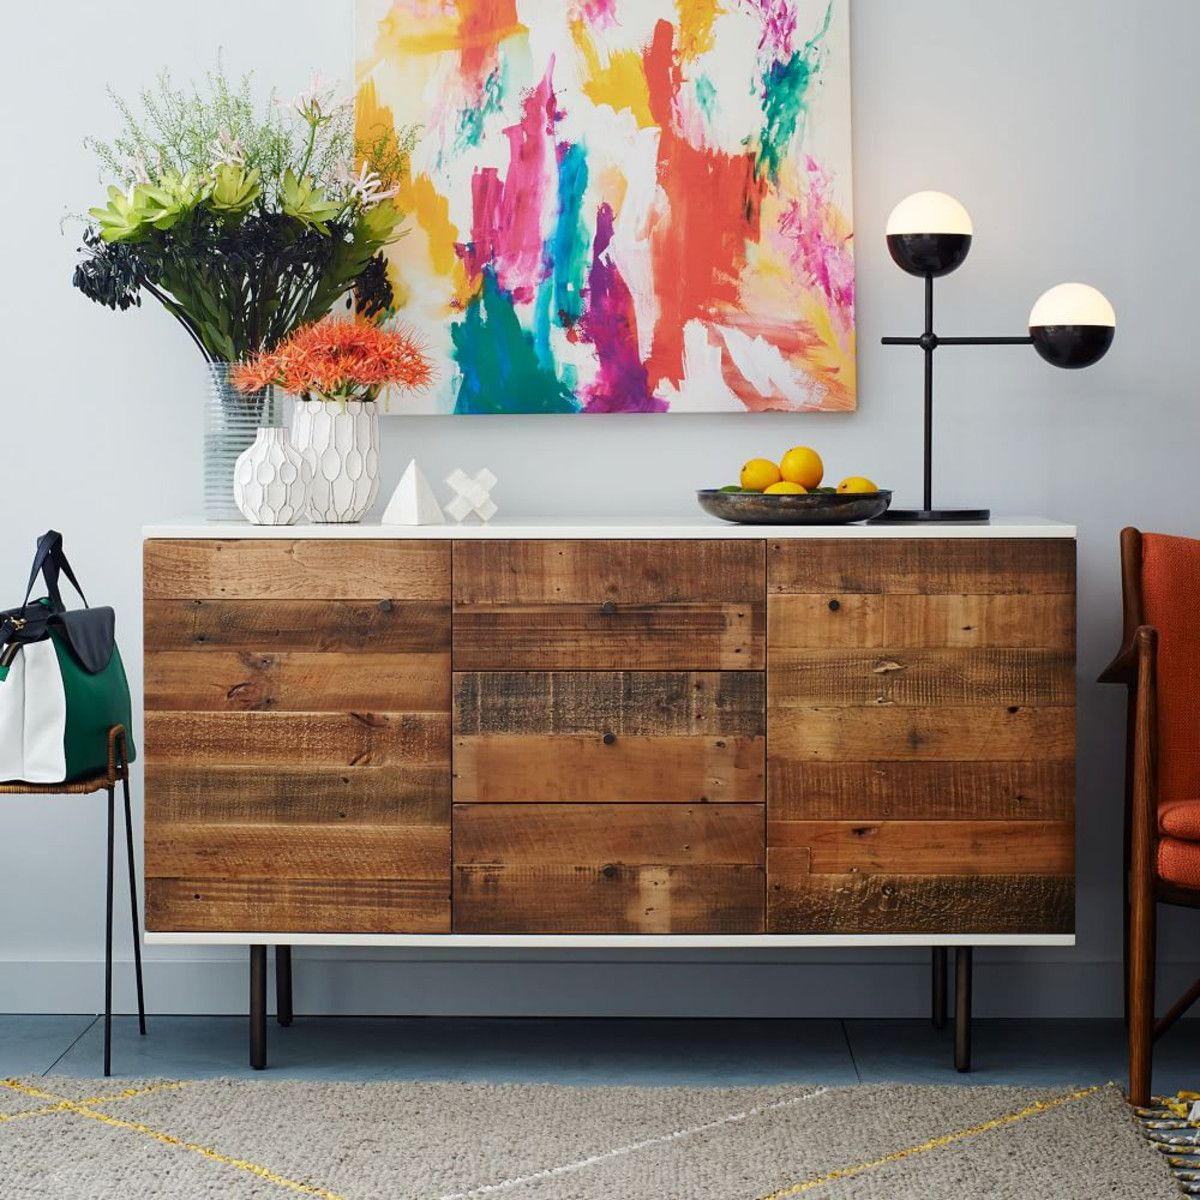 reclaimed wood  lacquer buffet  home  pinterest  madera  - reclaimed wood  lacquer buffet